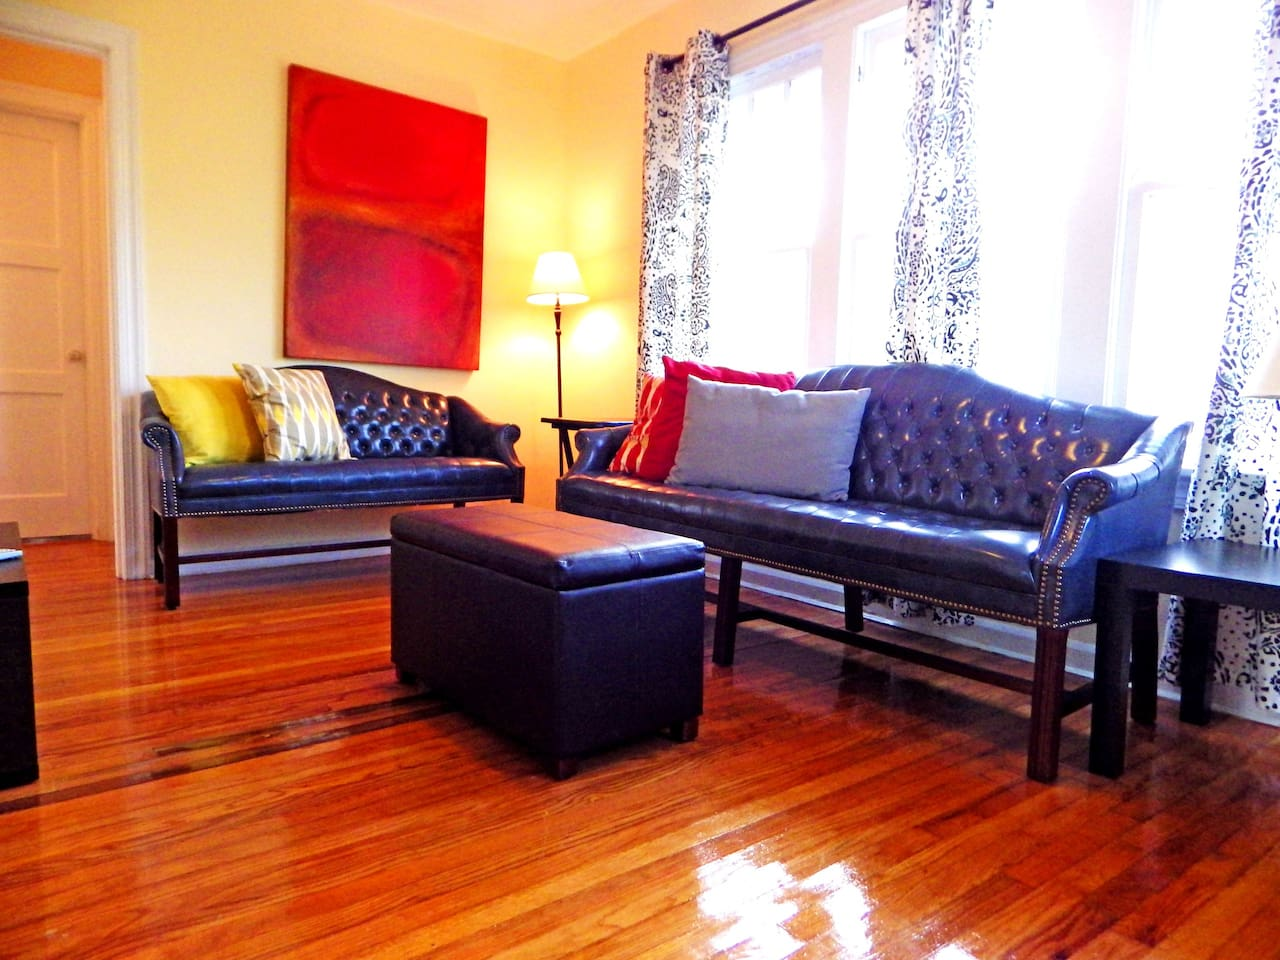 Vintage 2/1 apartment with original hardwood floors, perfect for a getaway!